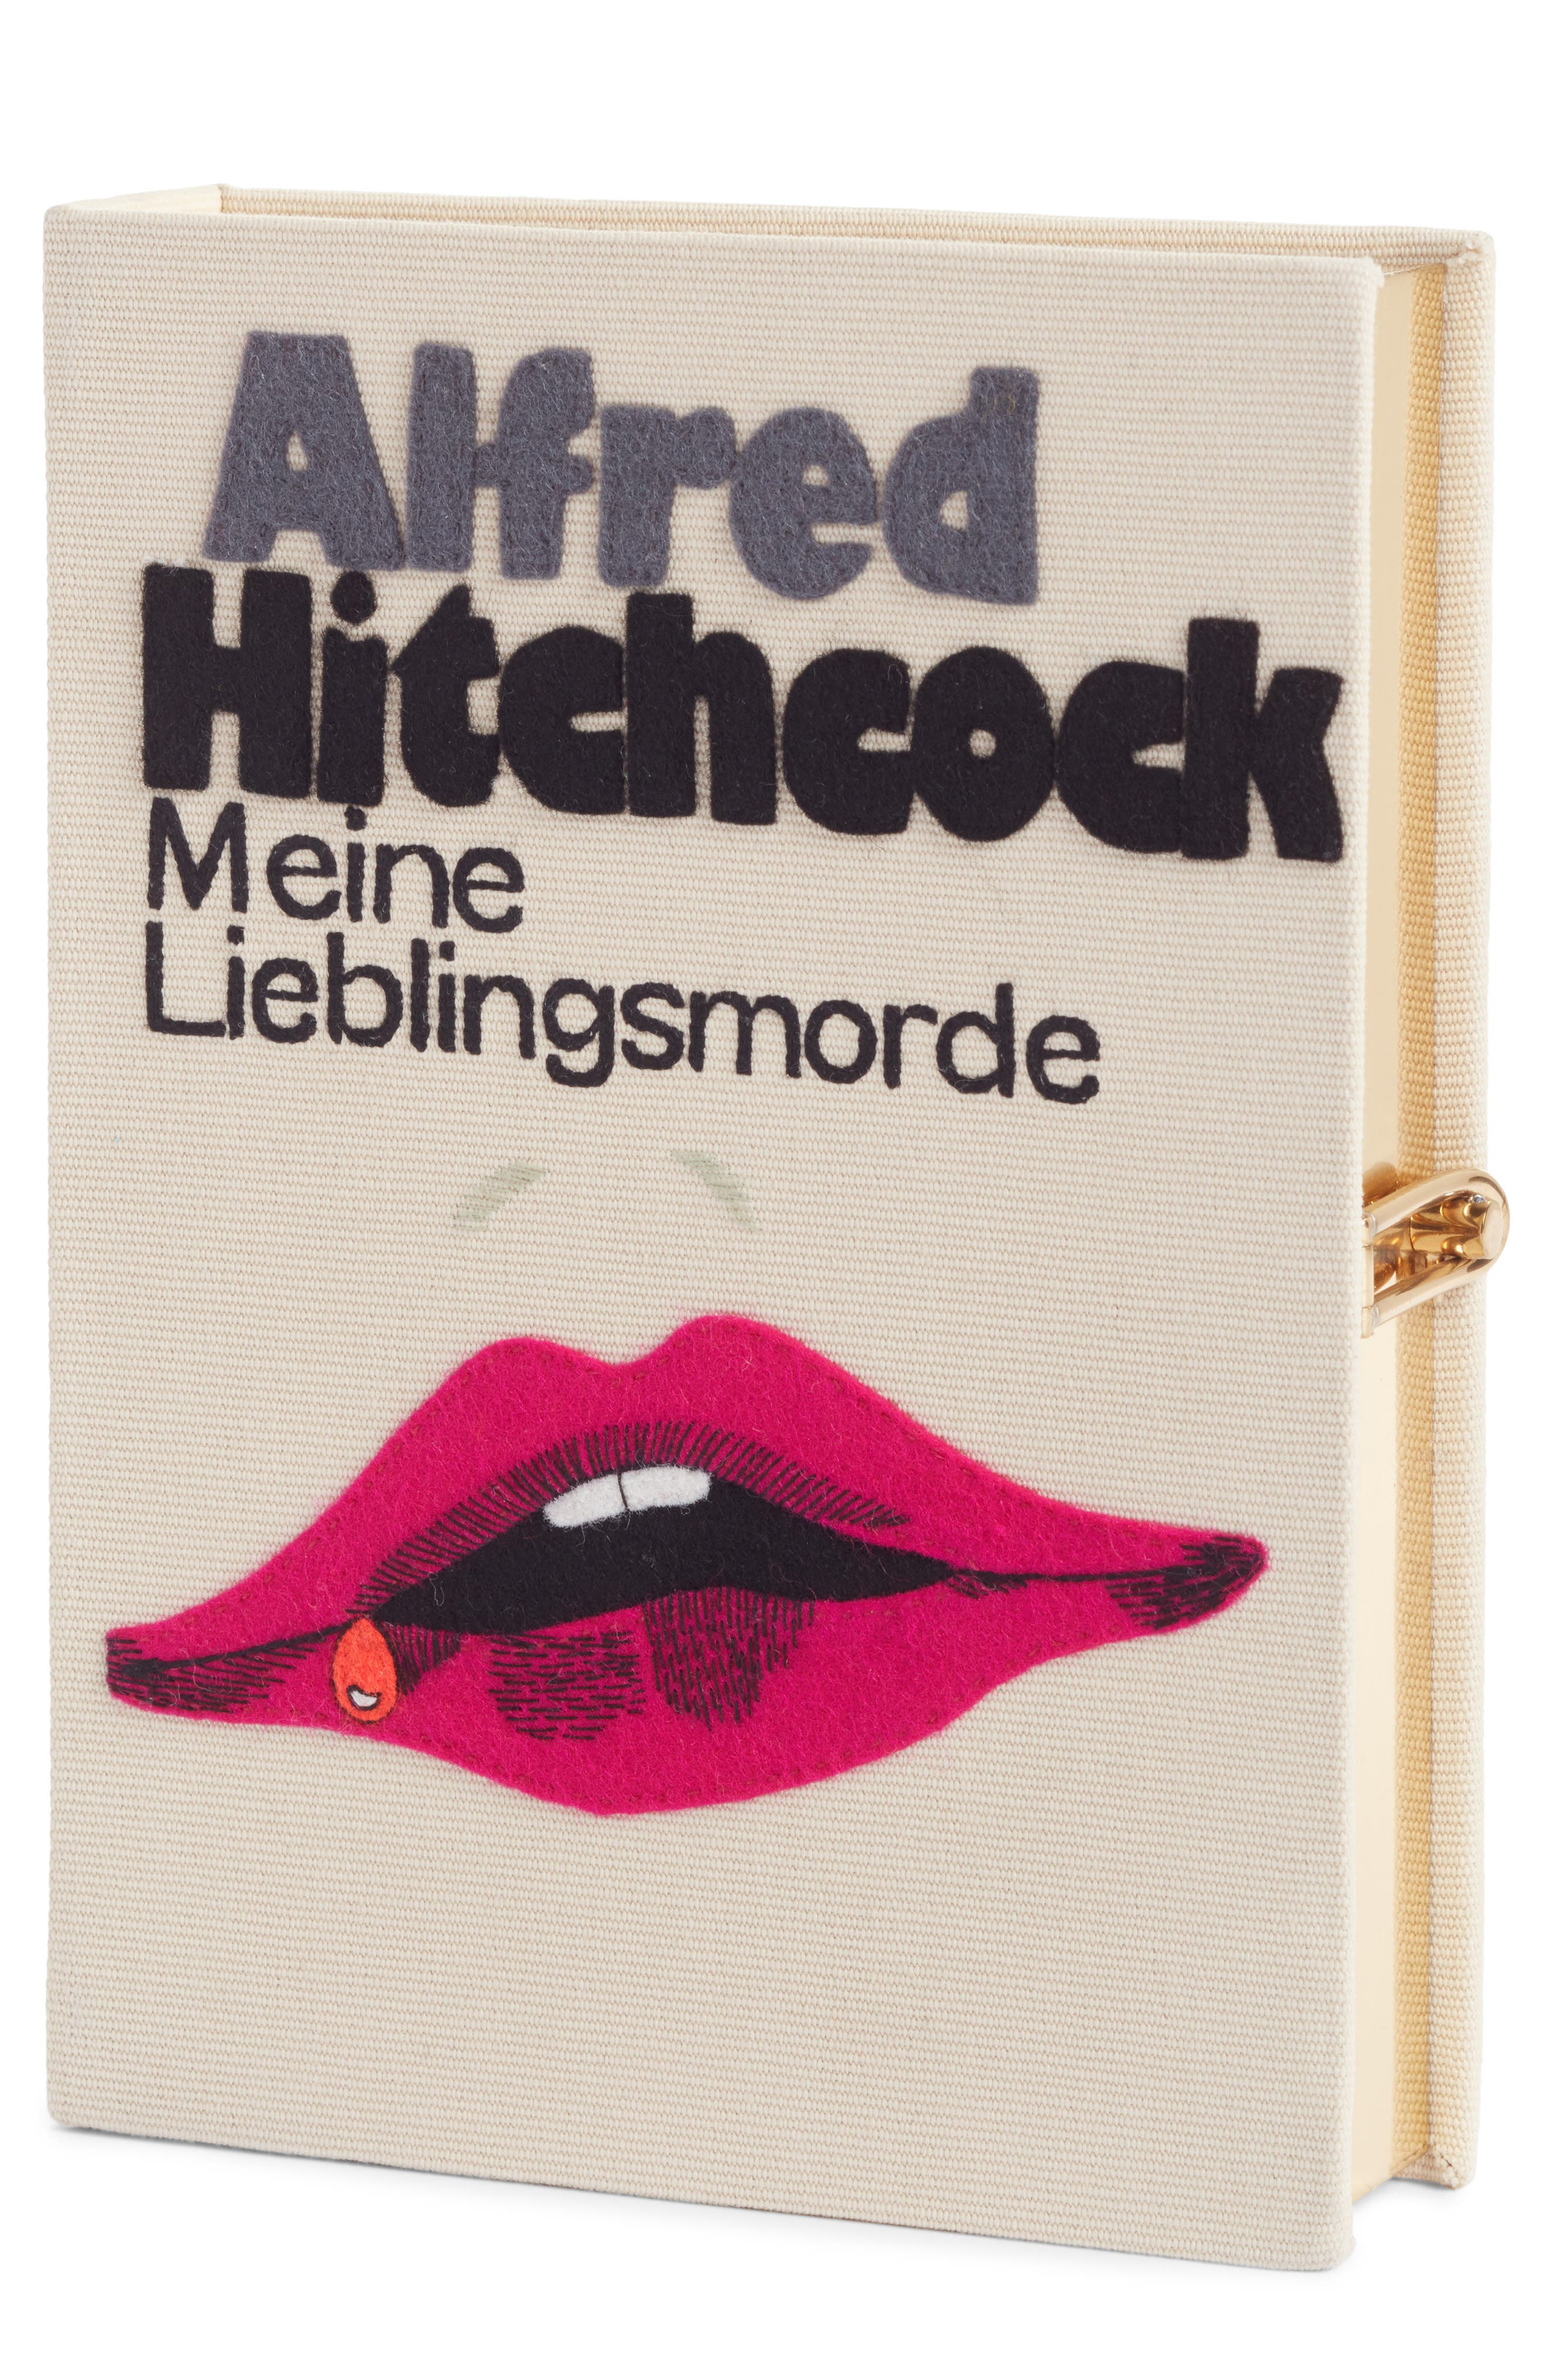 Hitchcock - 'Meine Lieblingsmorde' Book Clutch,                         Main,                         color, 900